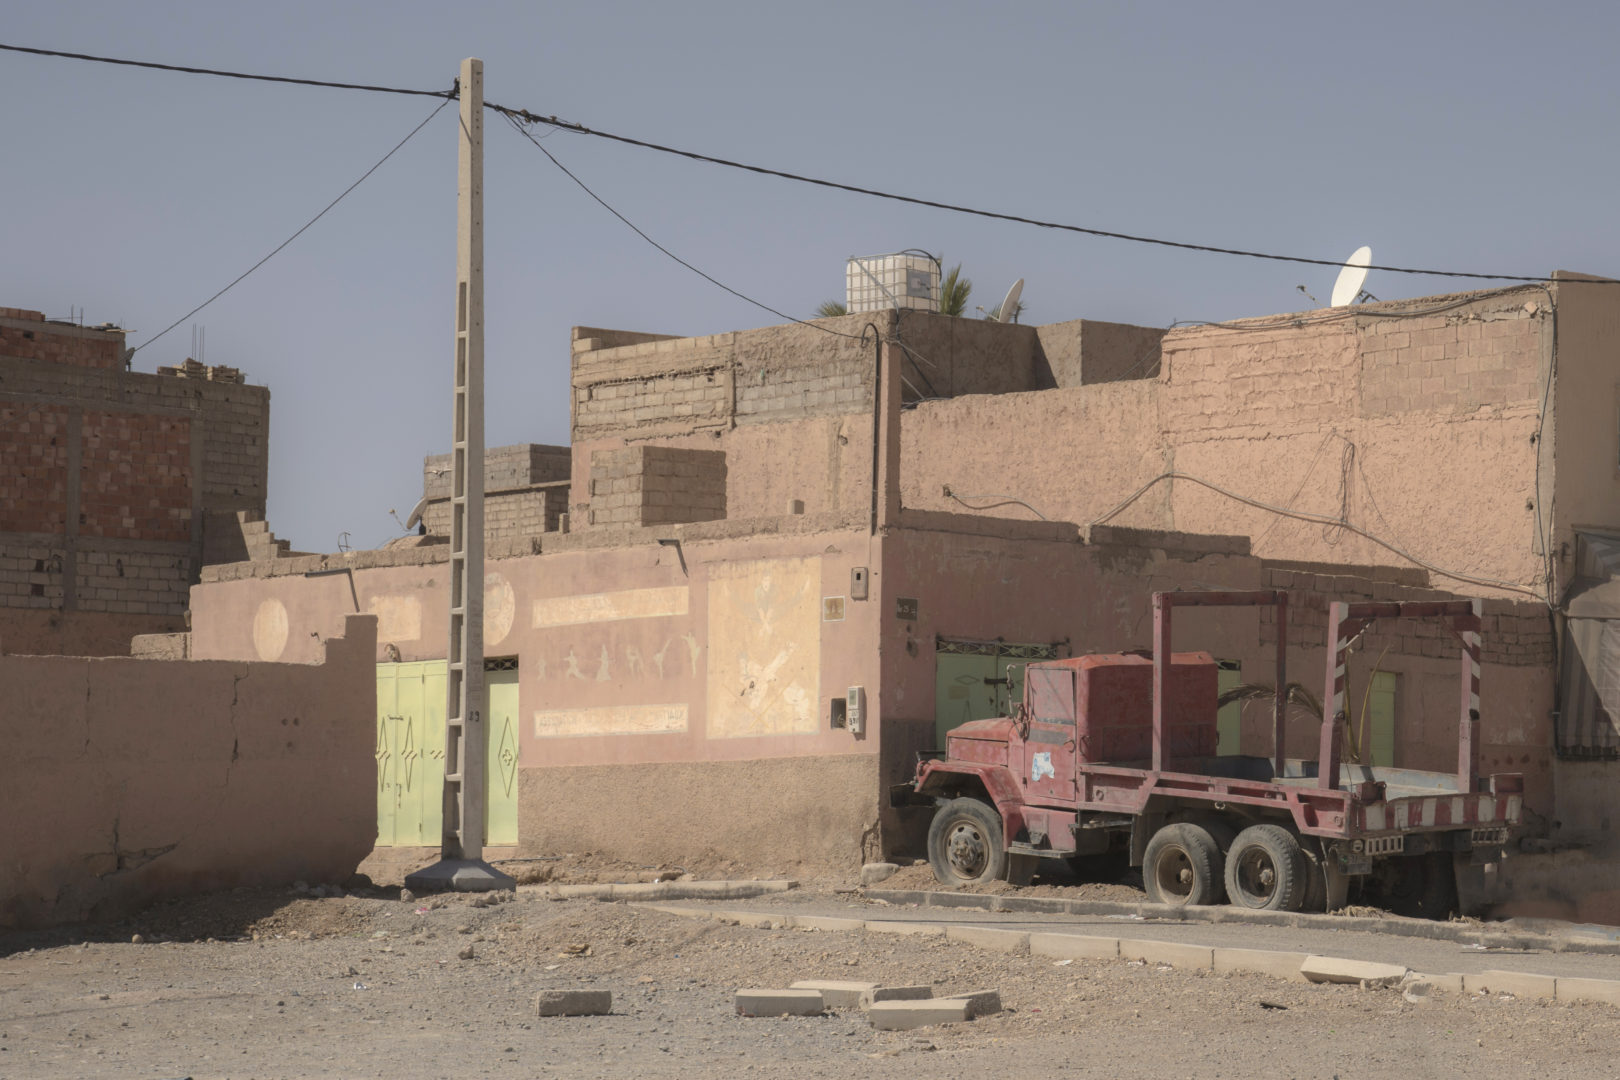 A red truck in Errachidia Morocco